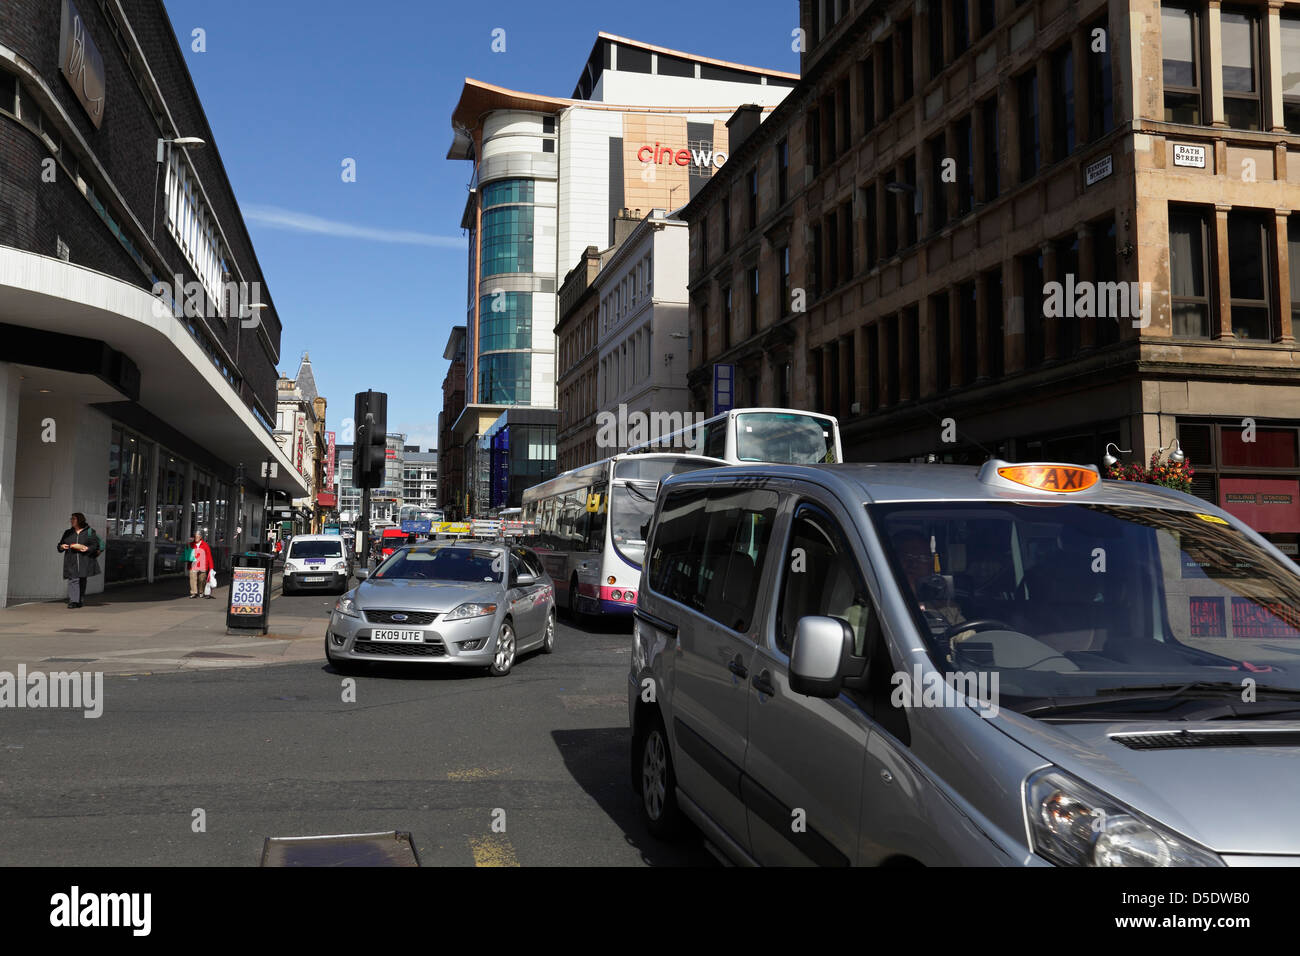 View North up Renfield Street from the junction with Bath Street in Glasgow city centre, Scotland, UK - Stock Image